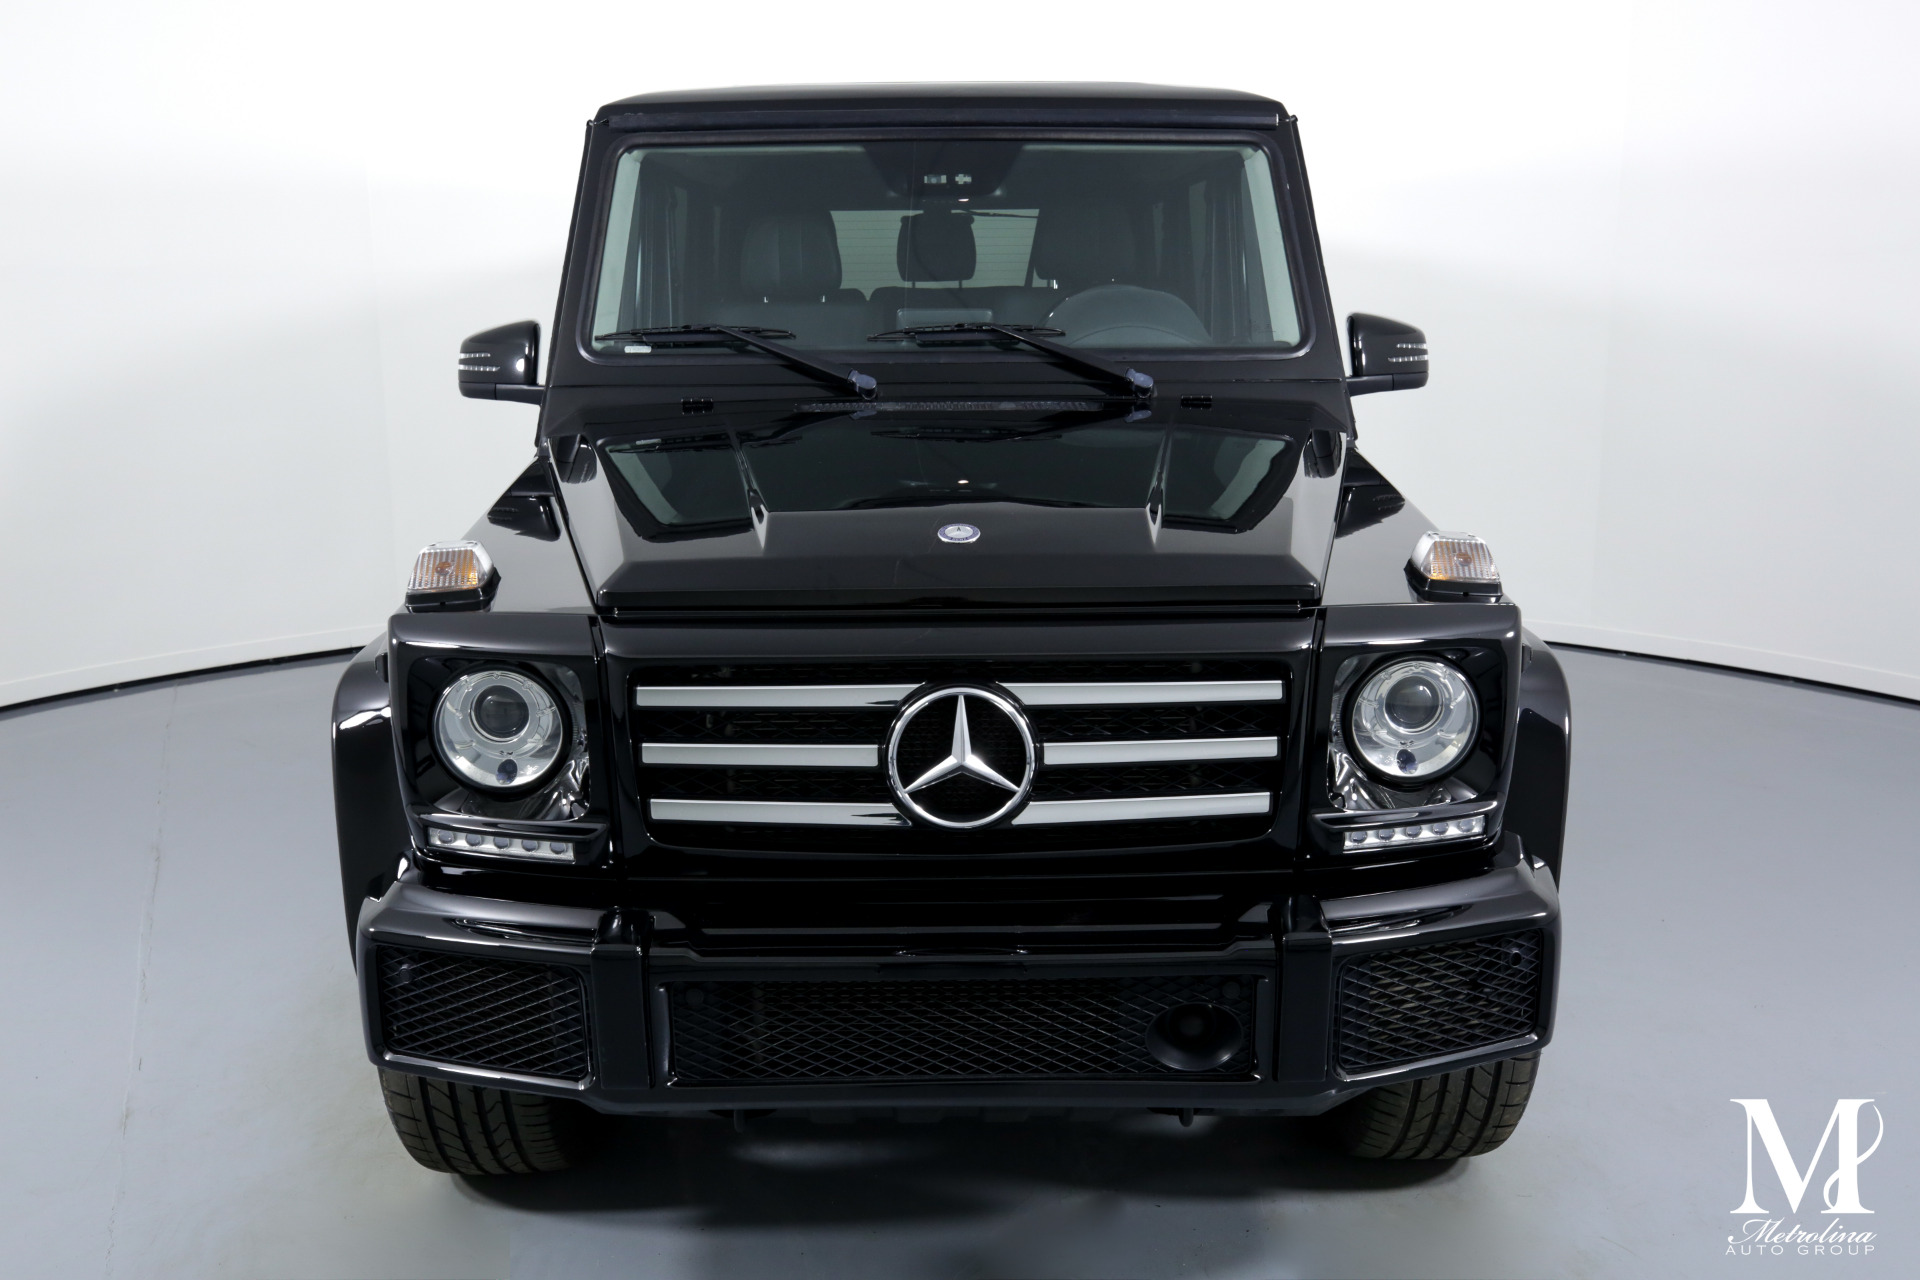 Used 2017 Mercedes-Benz G-Class G 550 for sale $74,996 at Metrolina Auto Group in Charlotte NC 28217 - 3